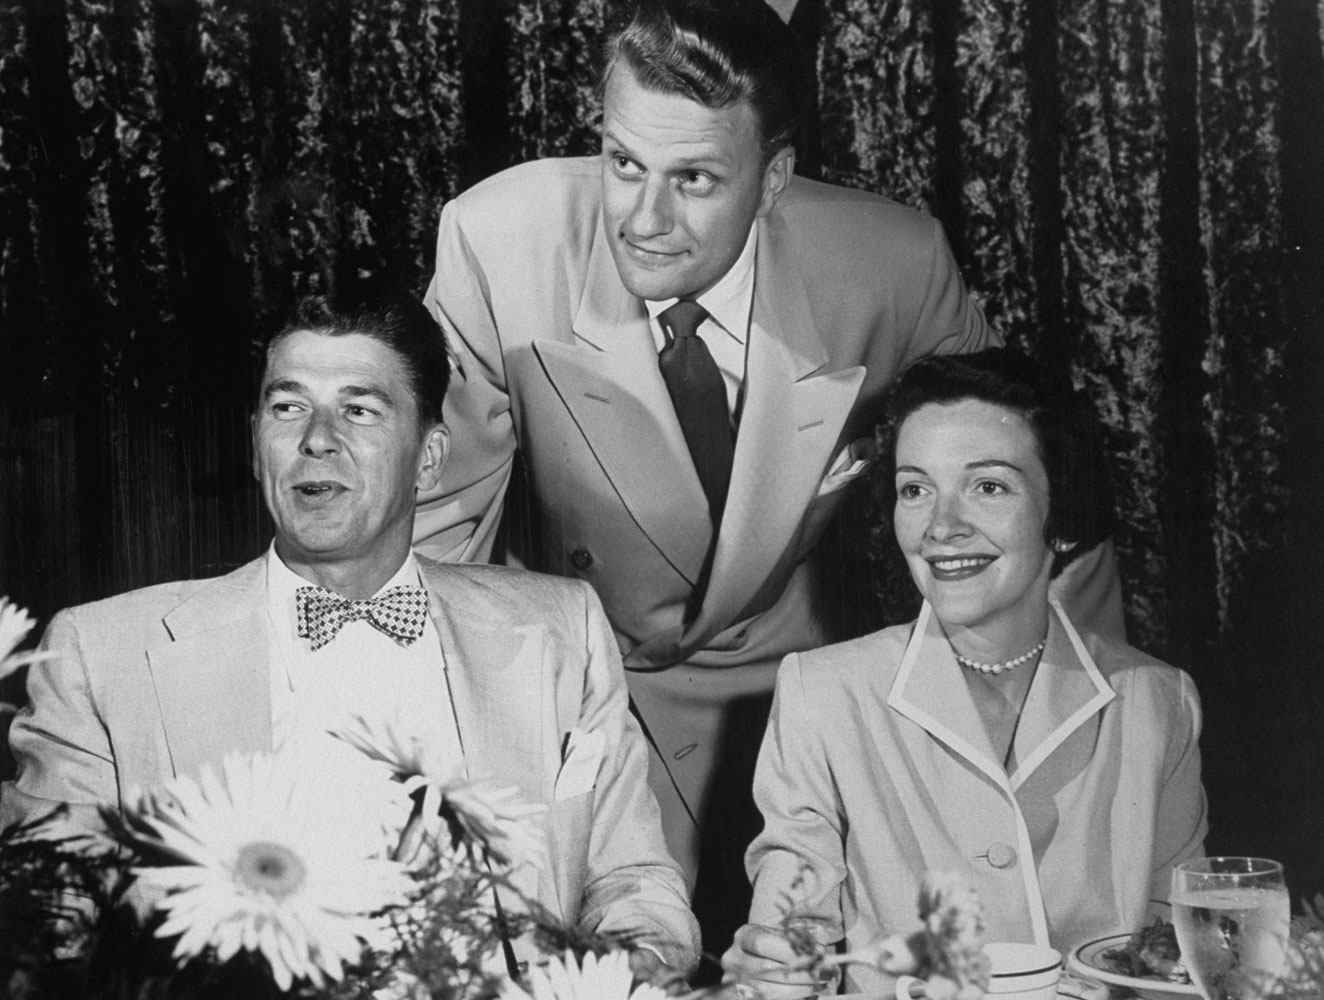 Long-Term Relationship                                                              Husband and wife actors Ronald Reagan and Nancy Davis mug with Graham at a movie exhibitors' meeting in Dallas, 1952. The friendship between Graham and Reagan lasted through his presidency.